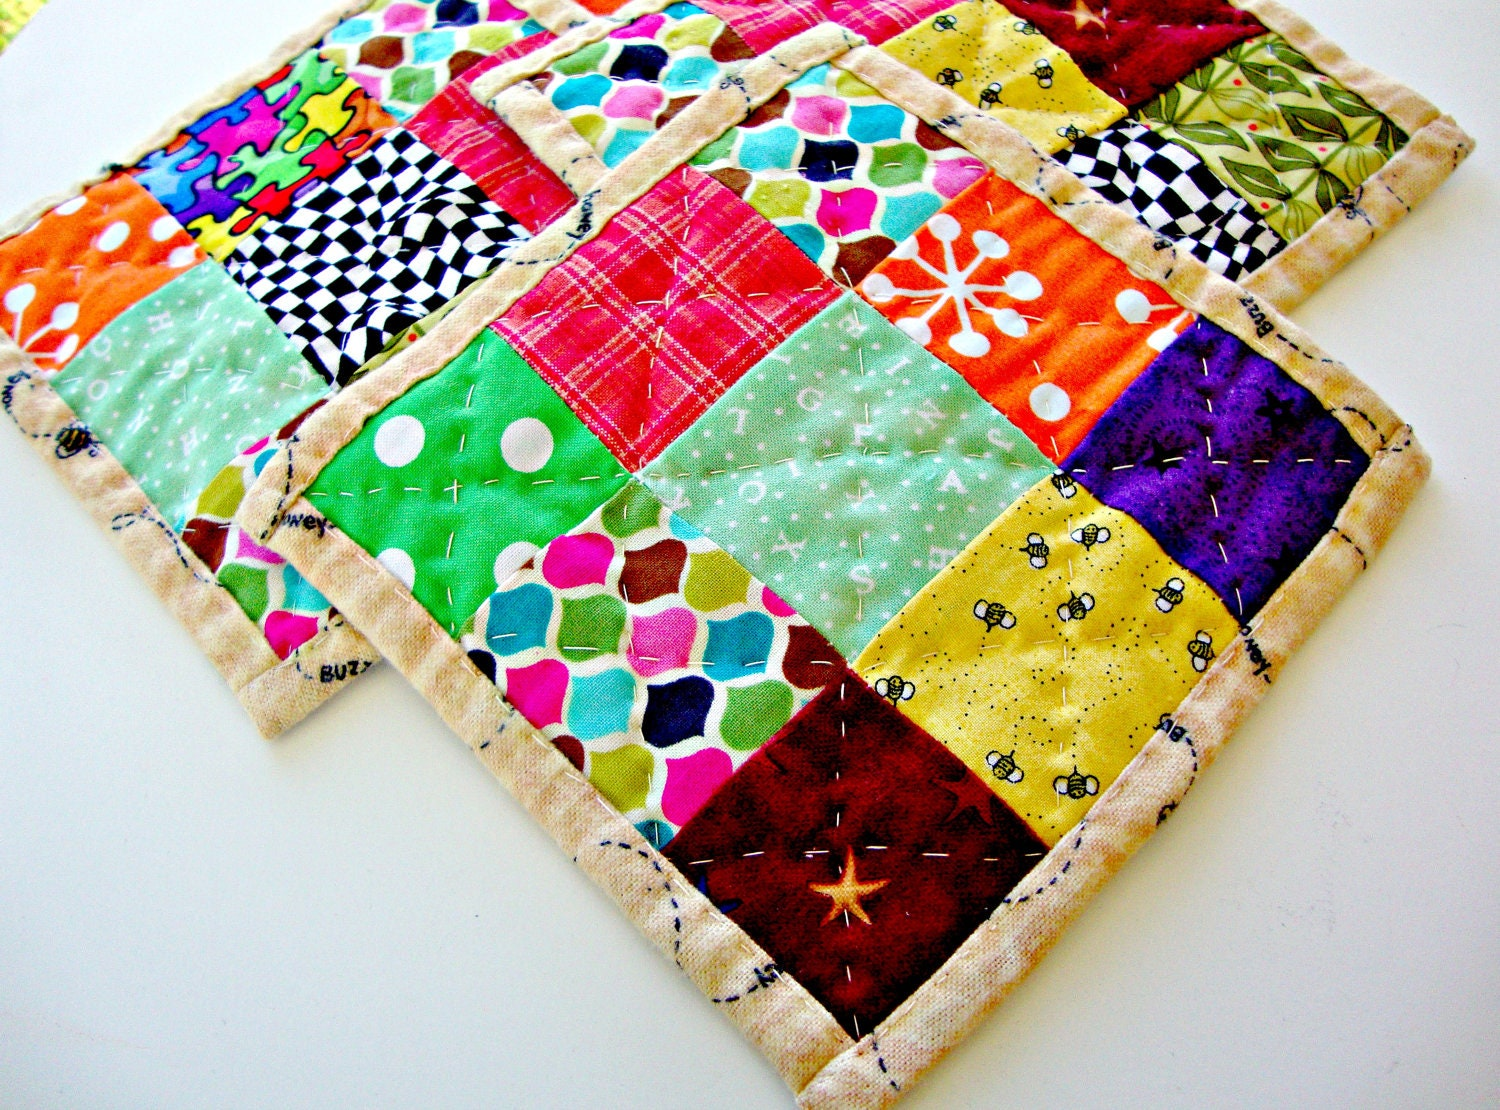 Coasters Quilted Coasters Modern Colorful Coasters